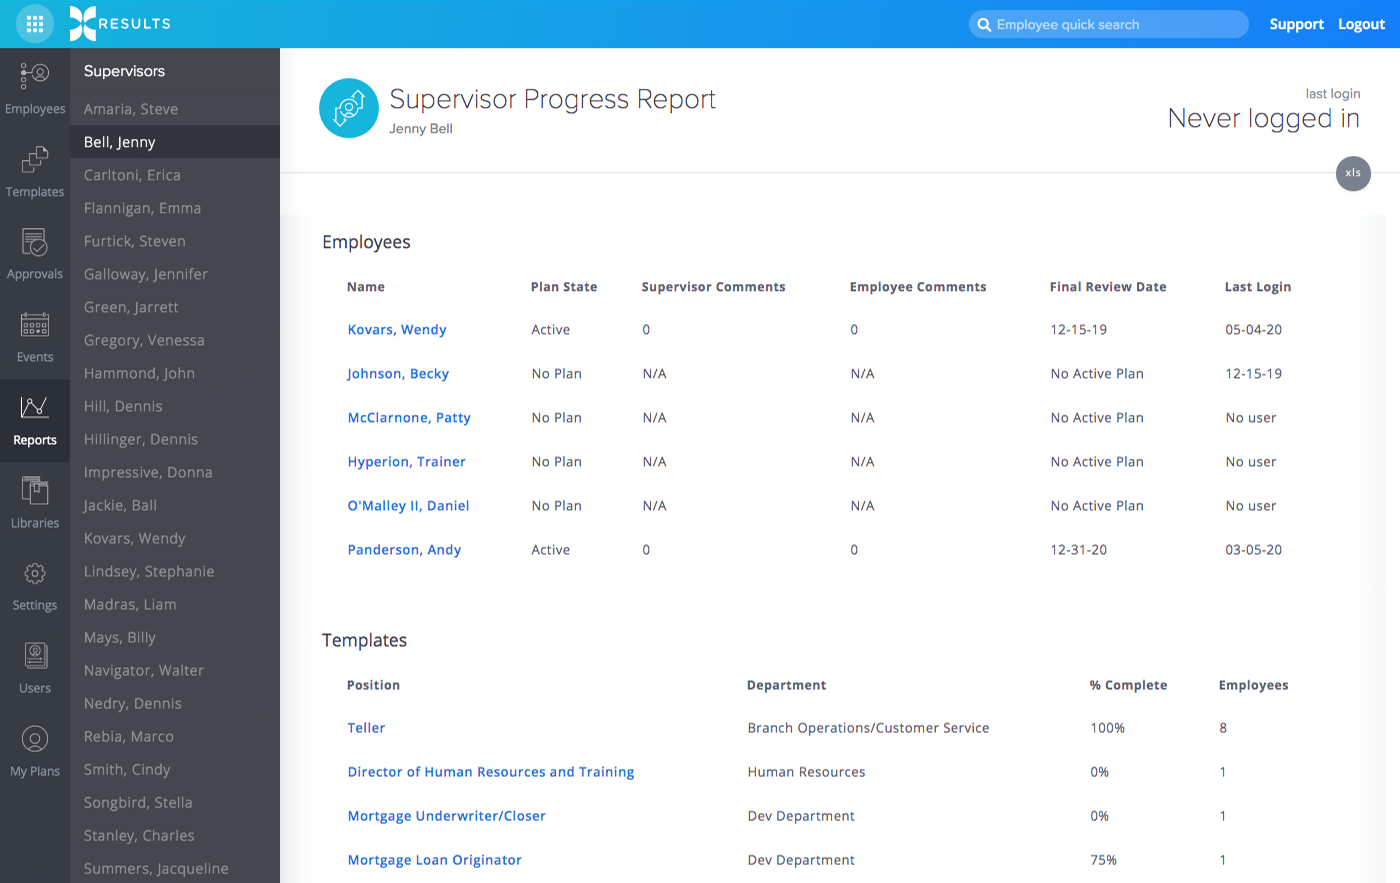 Supervisor Progress Report